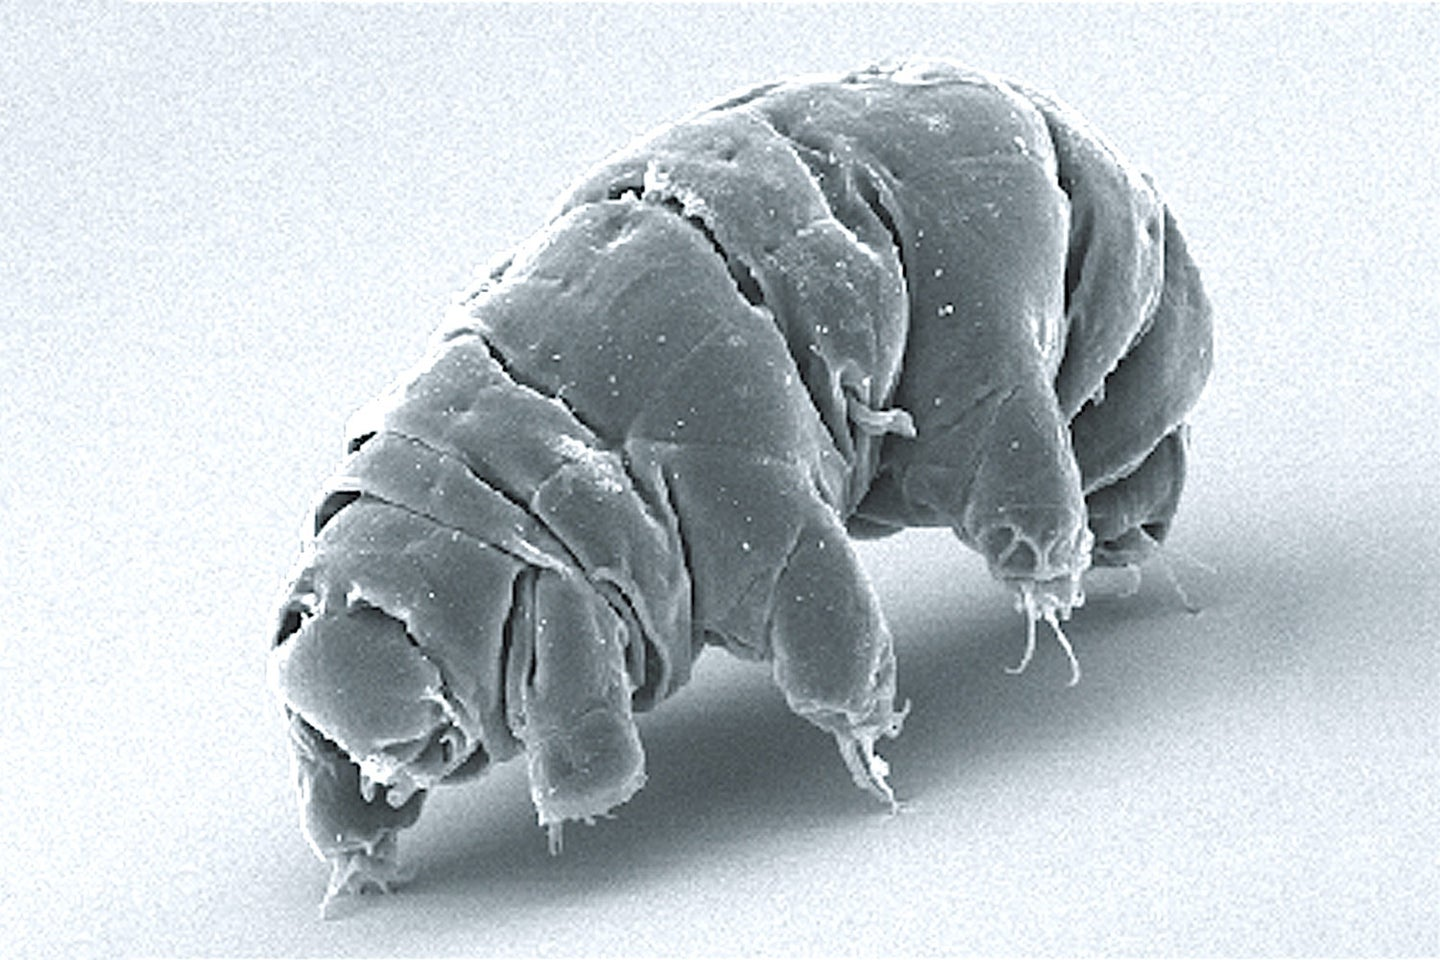 Tardigrades that crash-landed on the moon may still be alive, but they're not having fun